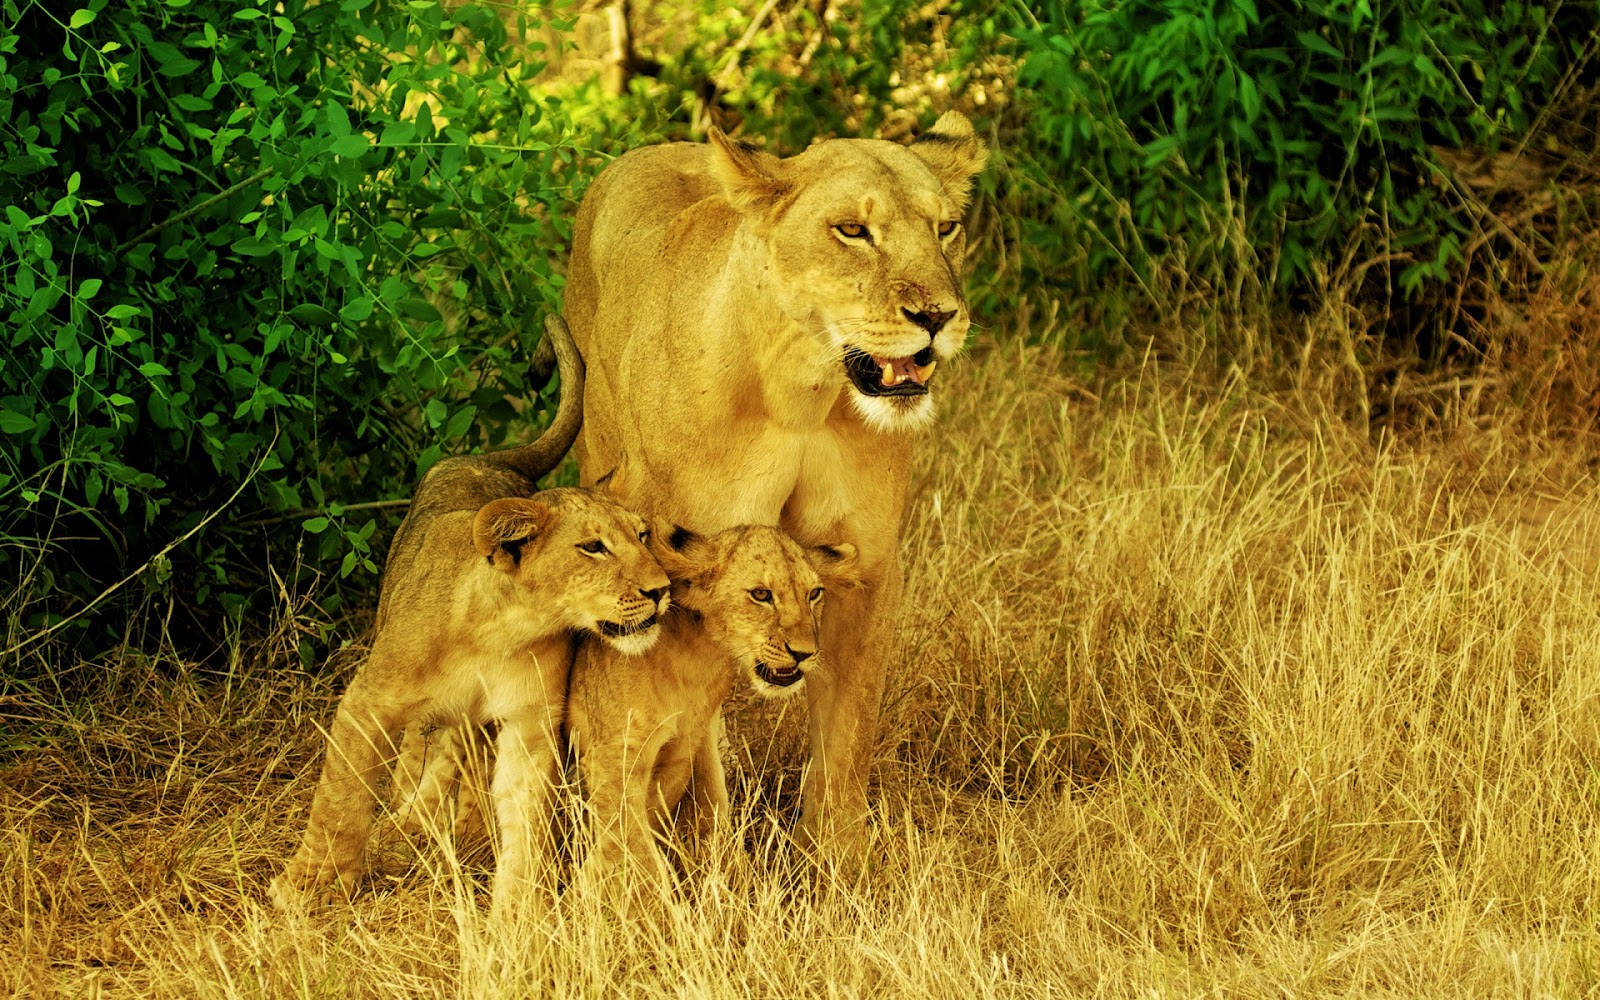 Lion family hd - photo#23